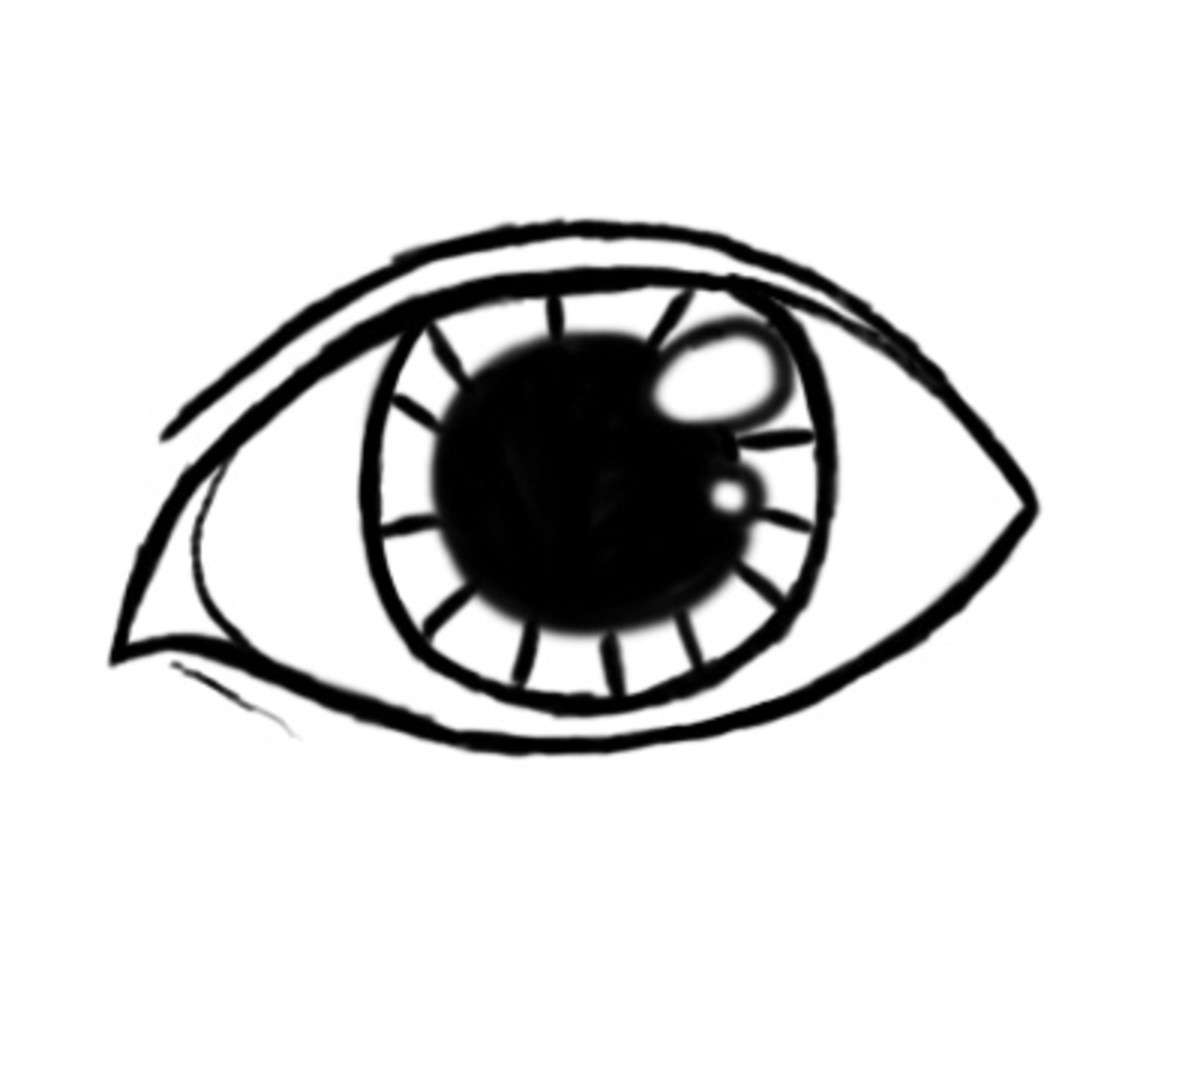 Draw in the top part of the eyelid as it appears in this step.